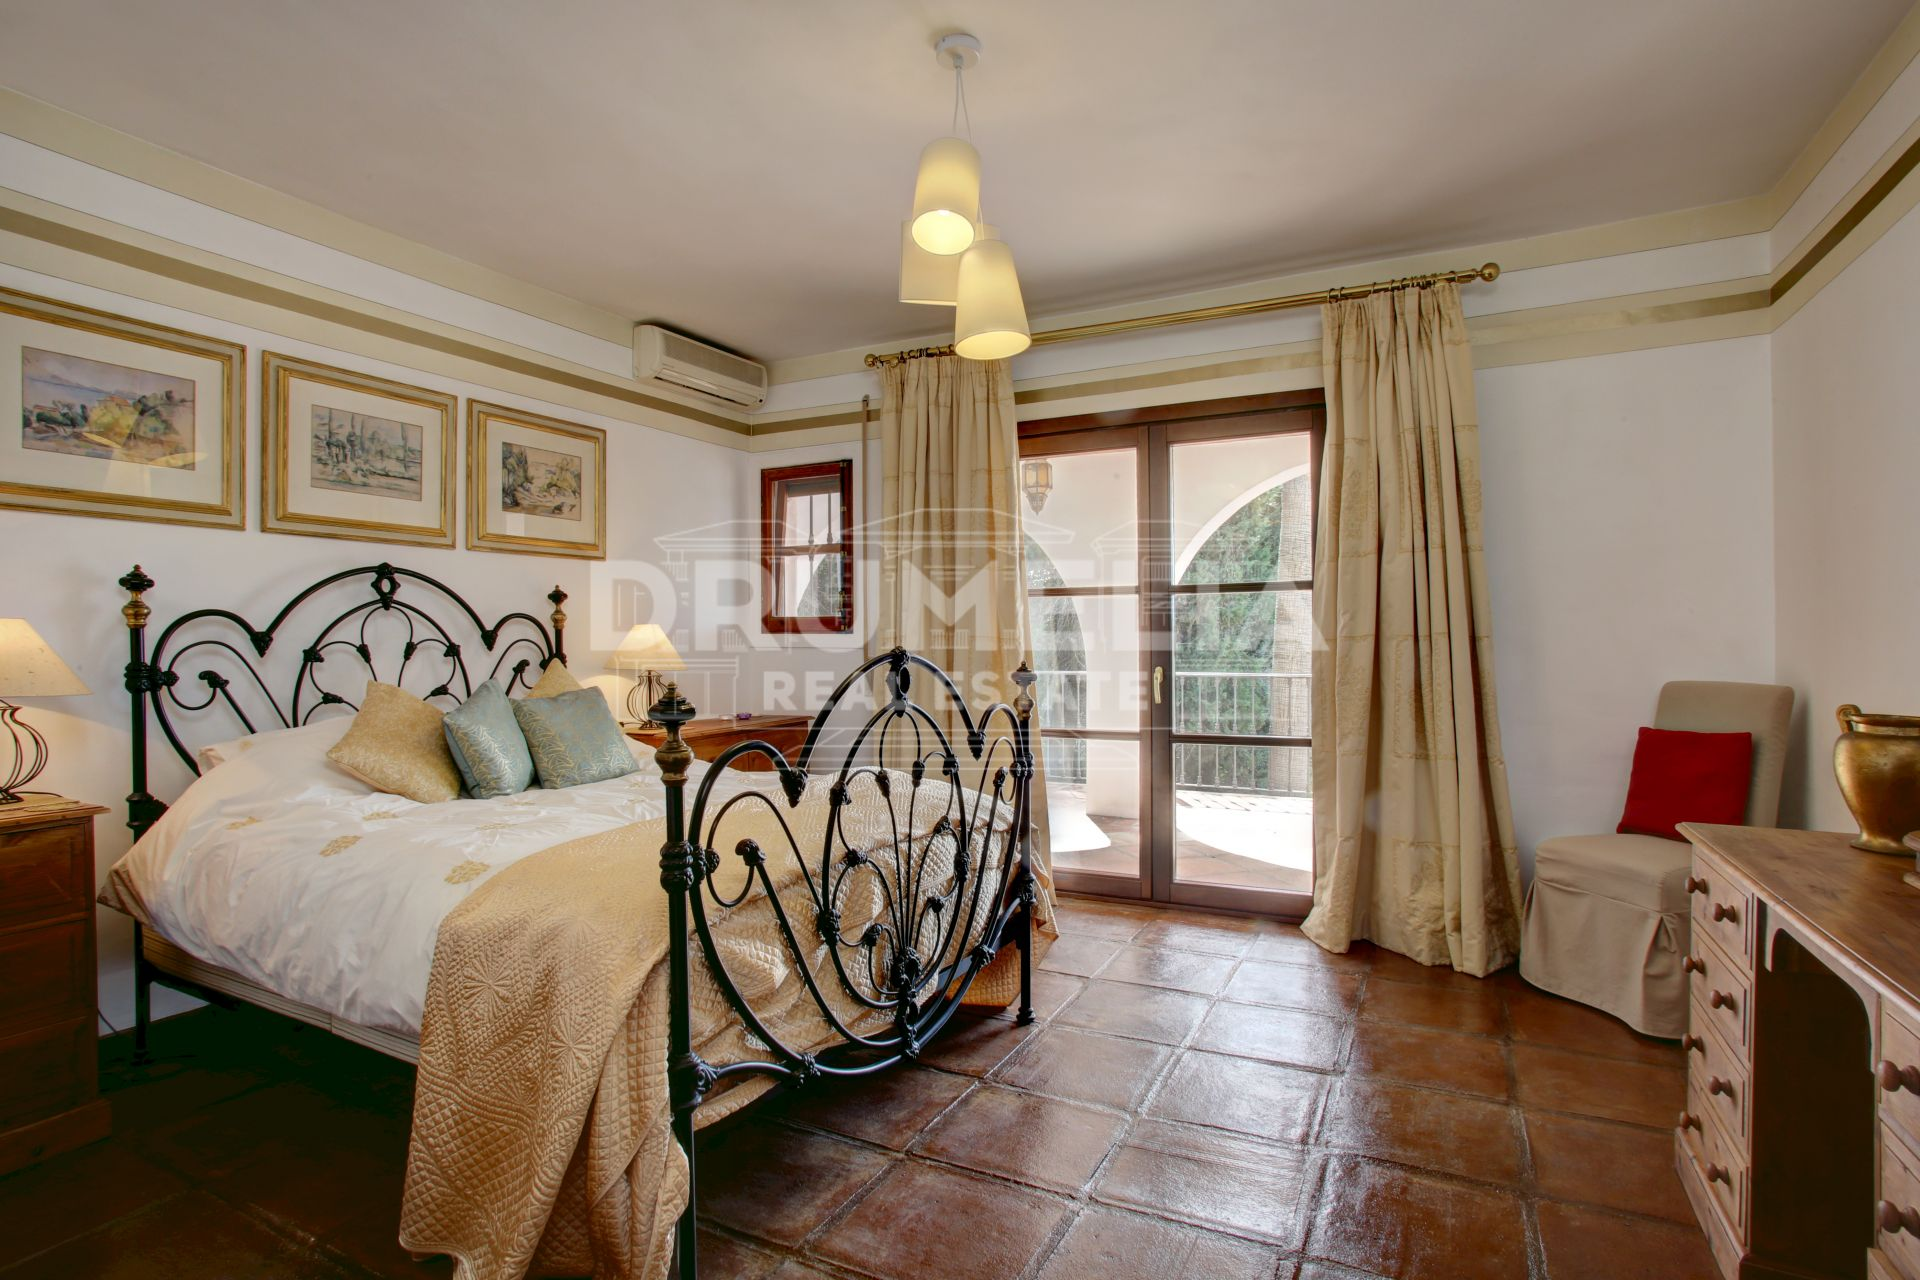 Marbella Golden Mile, Elegant Luxury Mediterranean Villa, La Carolina, Marbella Golden Mile